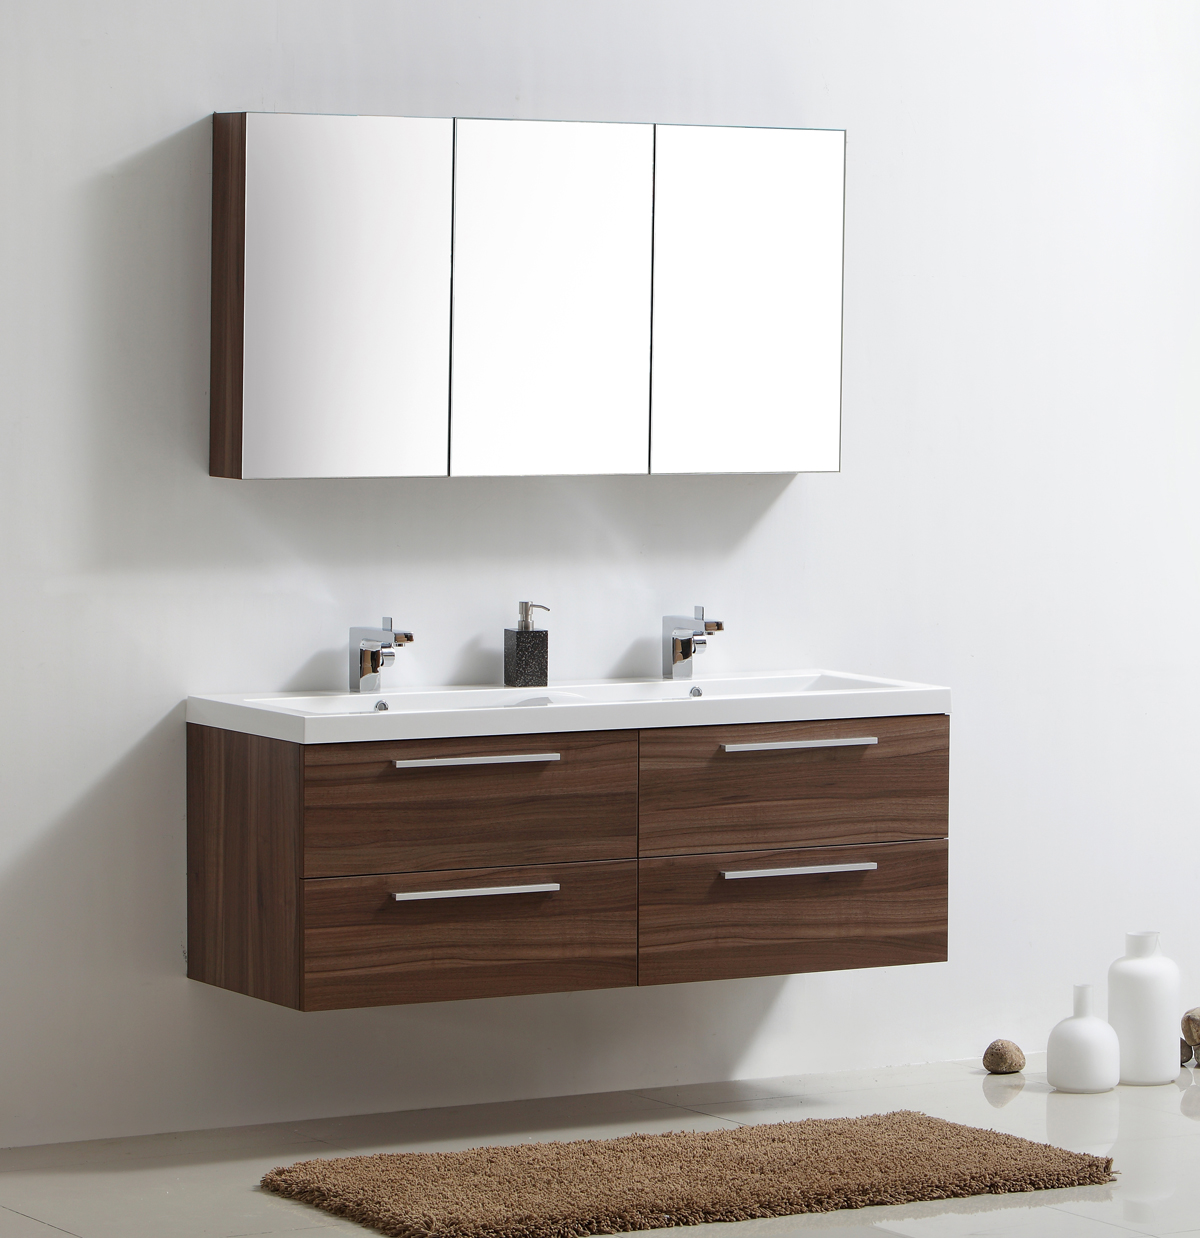 meuble de salle de bain r1440 armoire de toilette lavabo et meuble sous vasque ebay. Black Bedroom Furniture Sets. Home Design Ideas